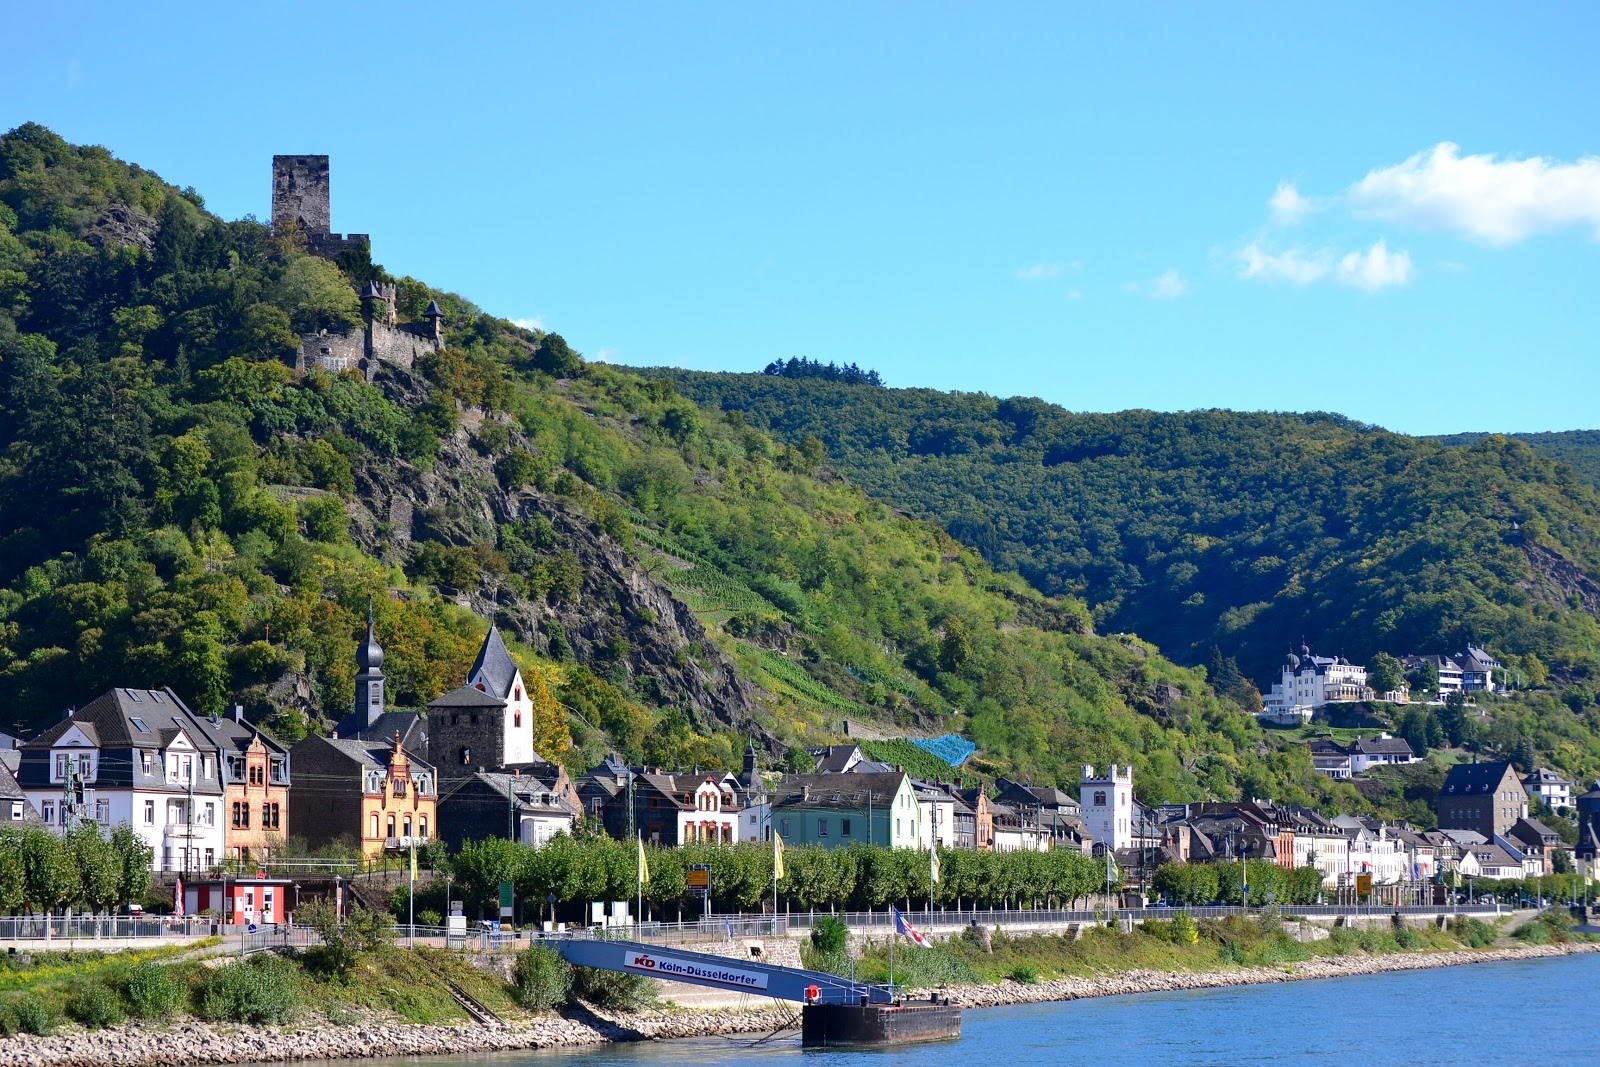 The town of Kaub with Castle Gutenfels perched on high.